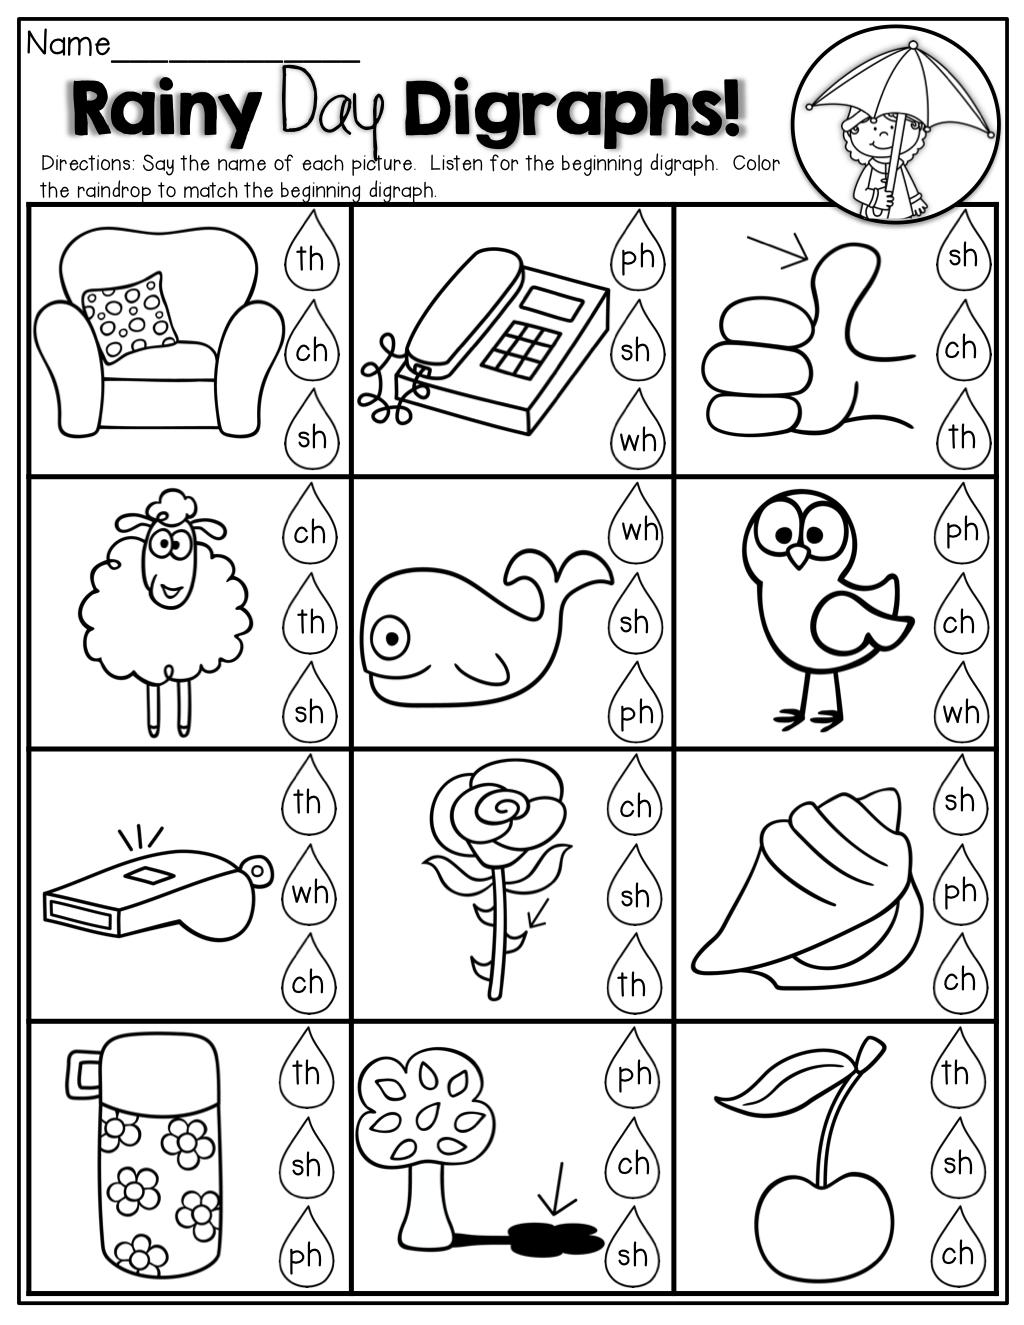 Free Printable Digraph Worksheets For Kindergarten